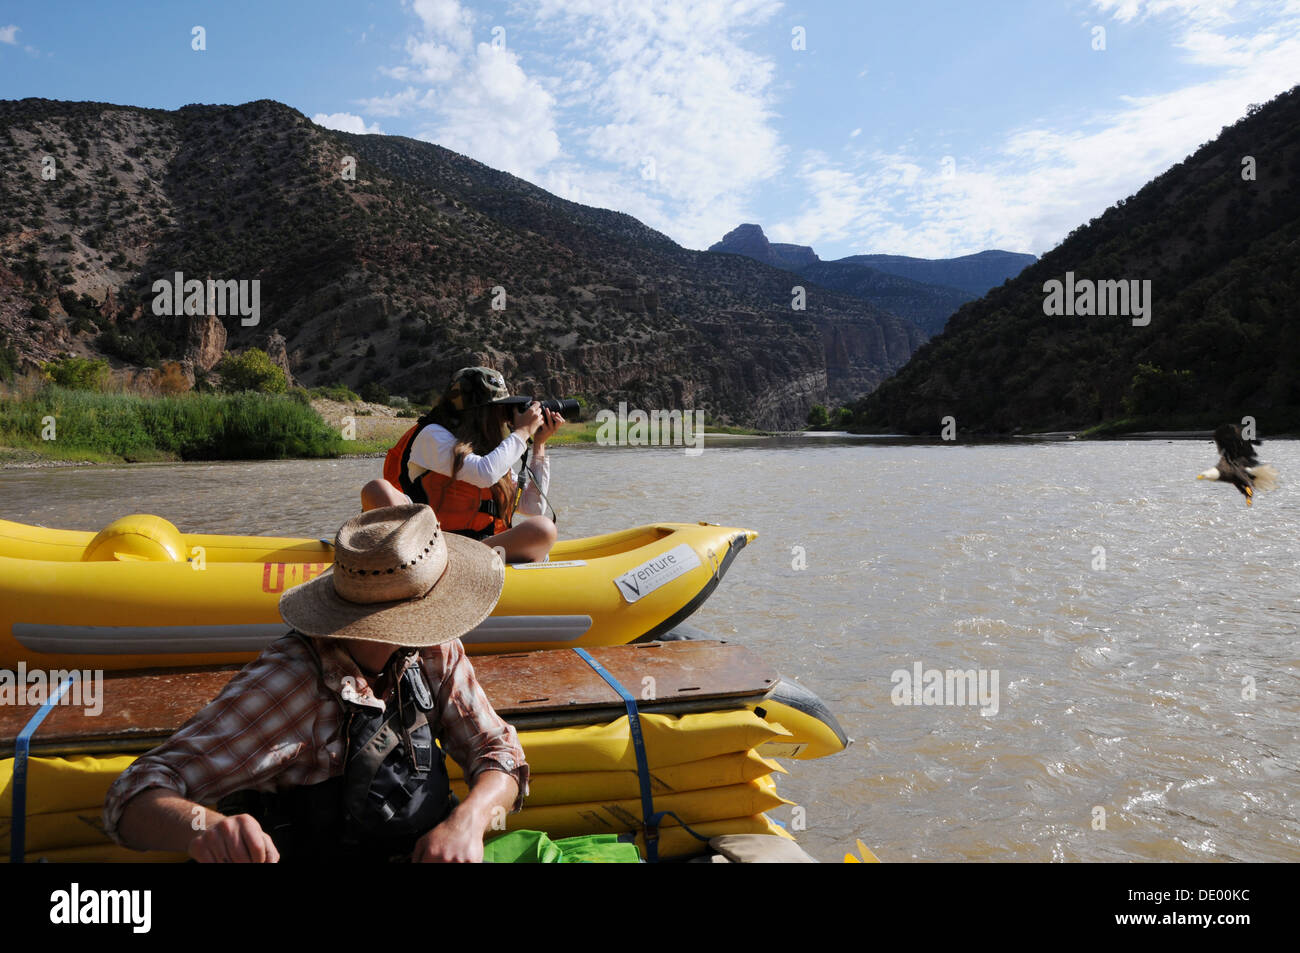 Young girl taking photo of bald headed eagle diving for fish while rafting the Green River in Dinosaur National Monument,  Utah - Stock Image